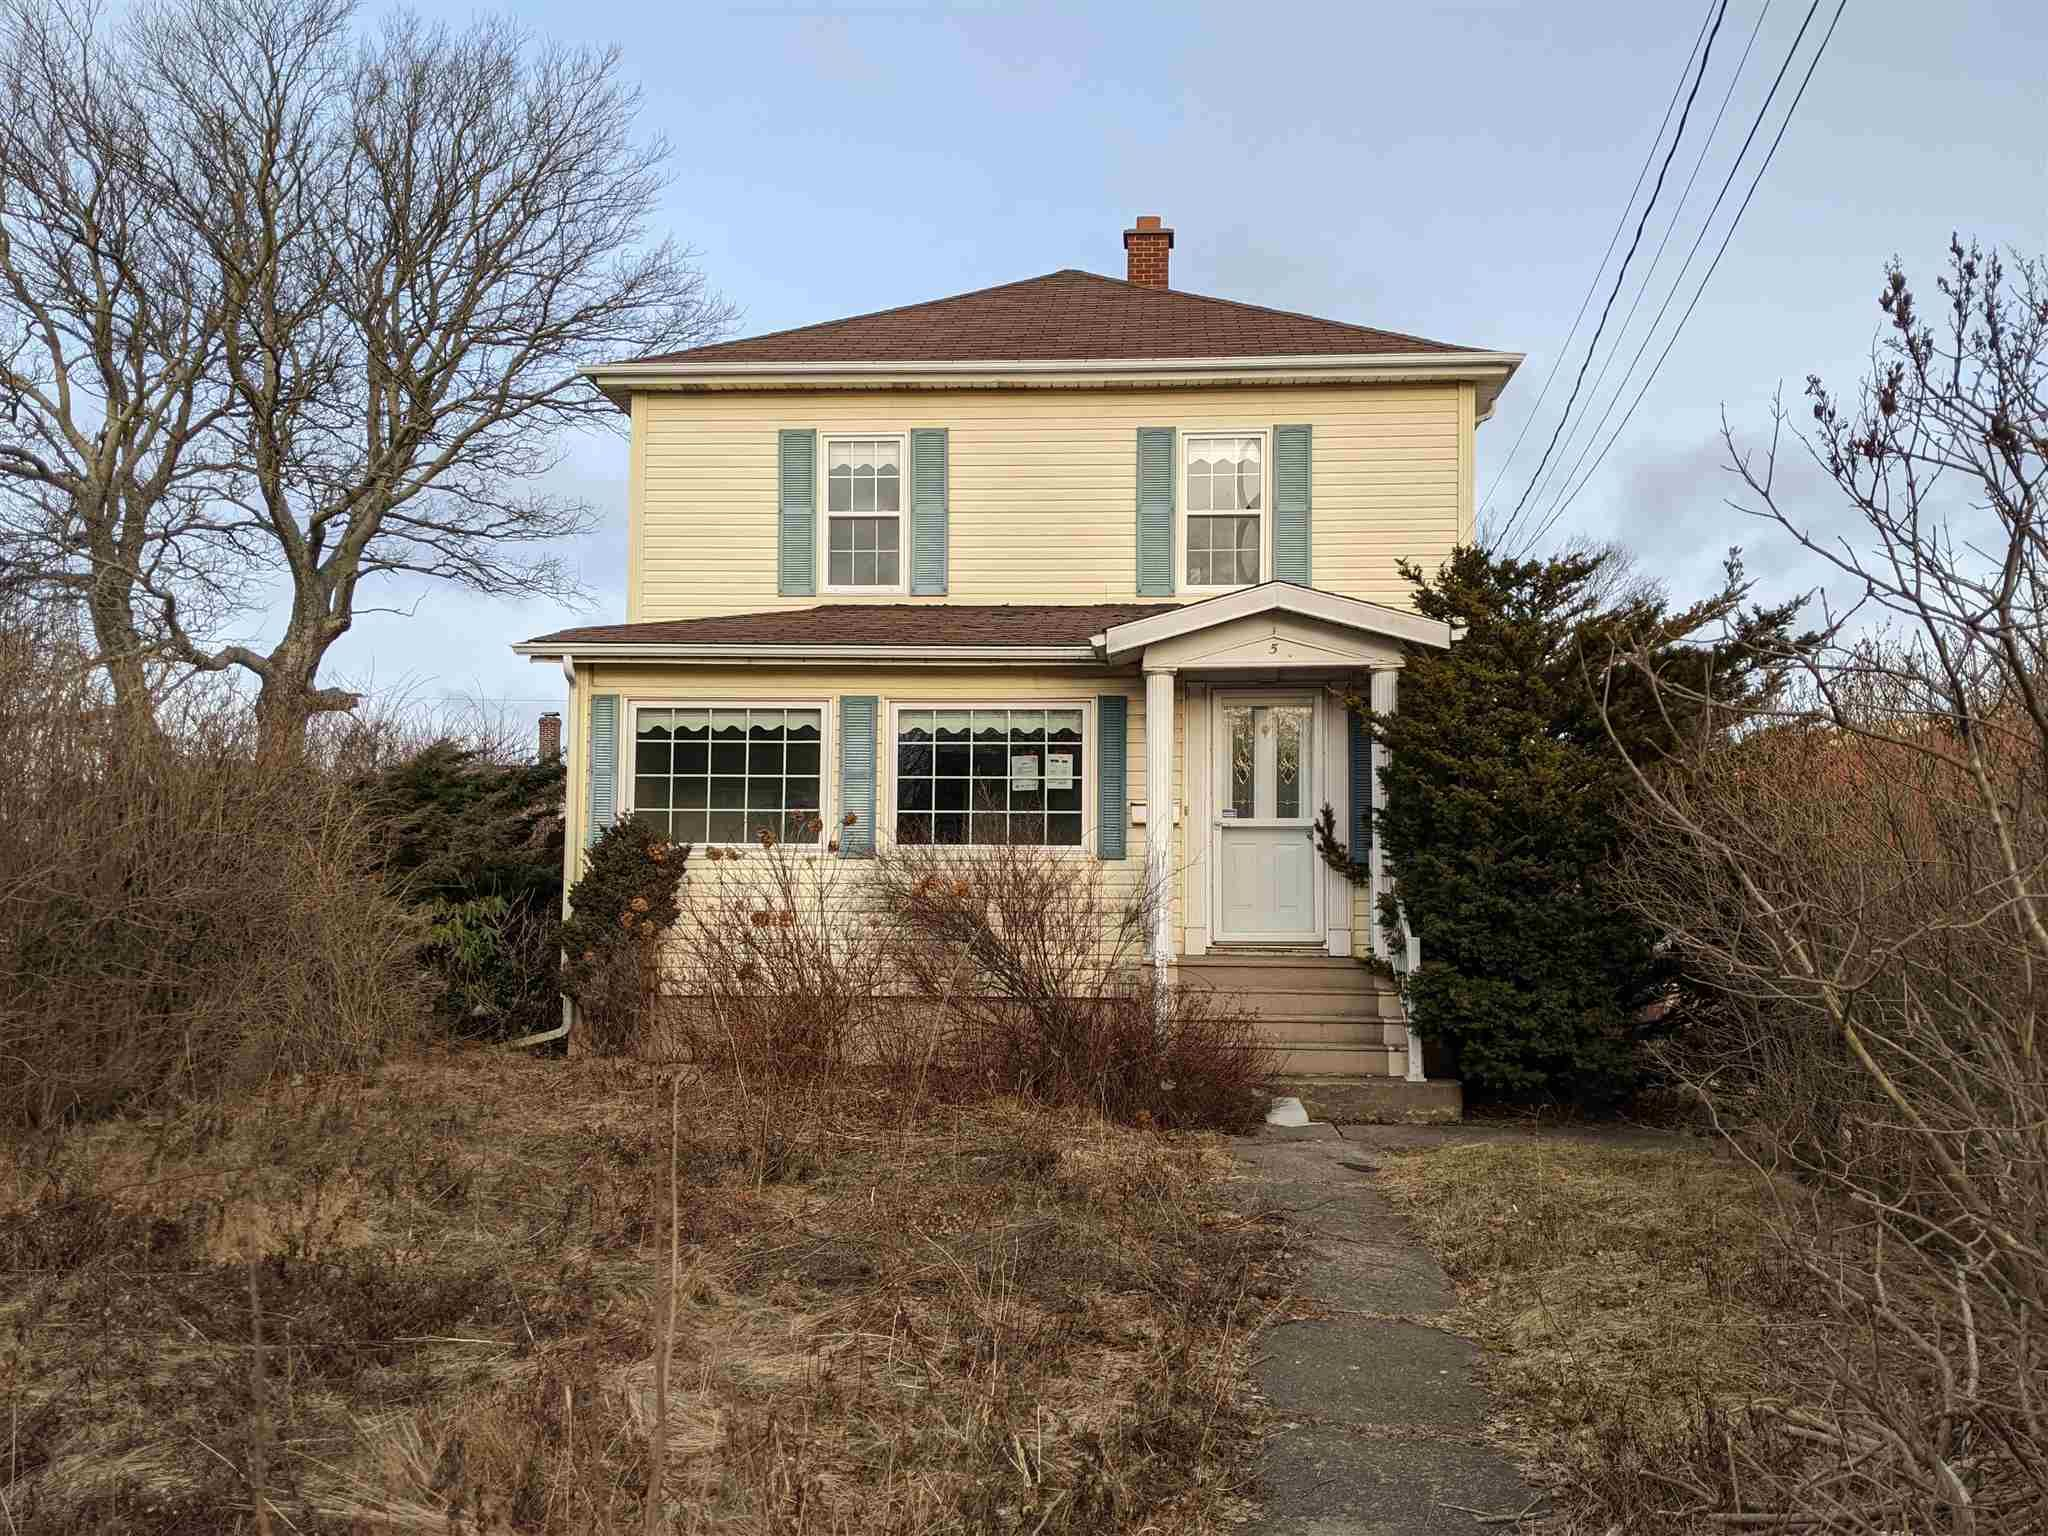 Main Photo: 5 Pleasant Street in Glace Bay: 203-Glace Bay Residential for sale (Cape Breton)  : MLS®# 202102382